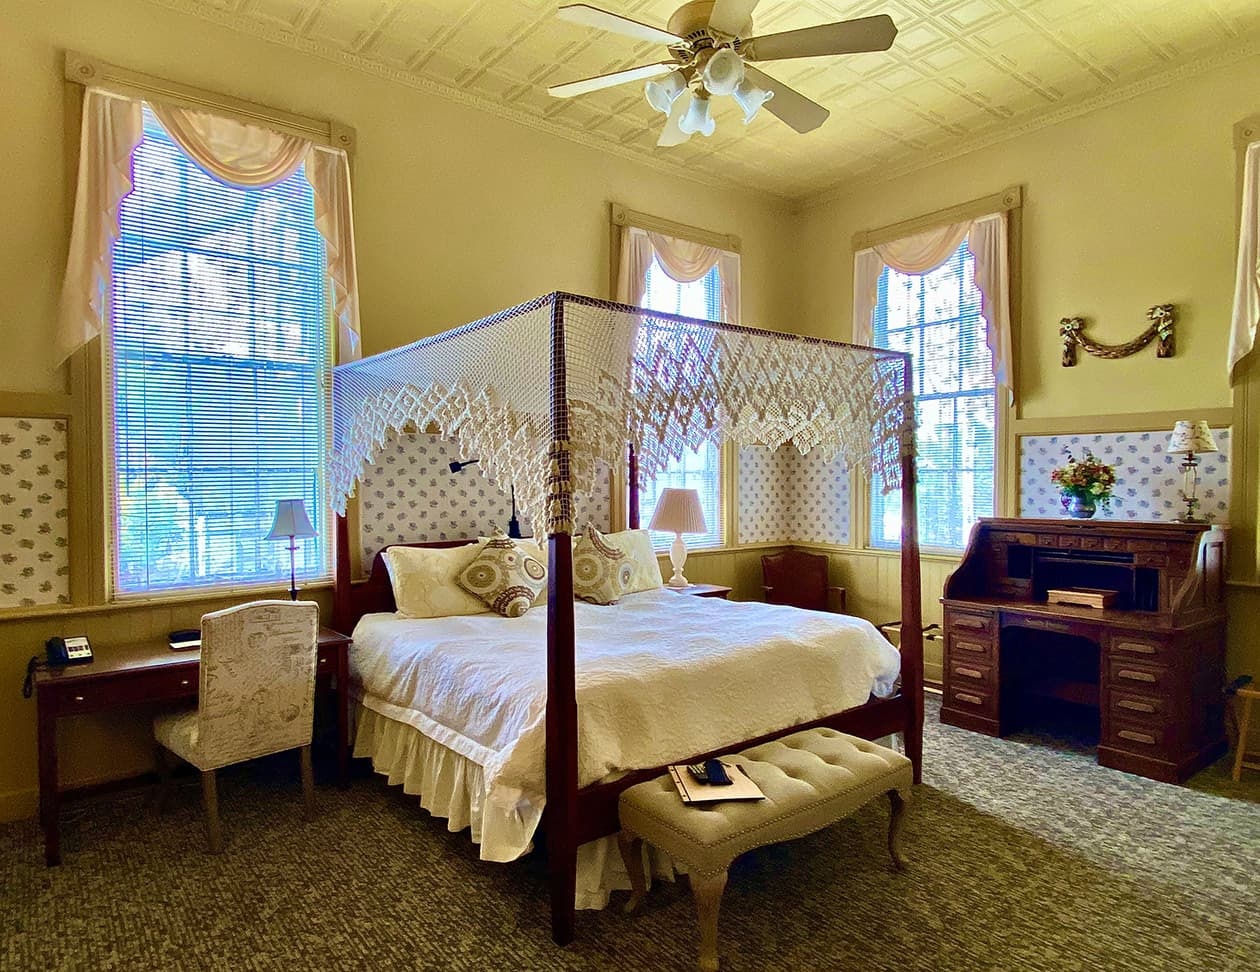 L'Aubusson room bed at a Berkshires, MA bed and breakfast